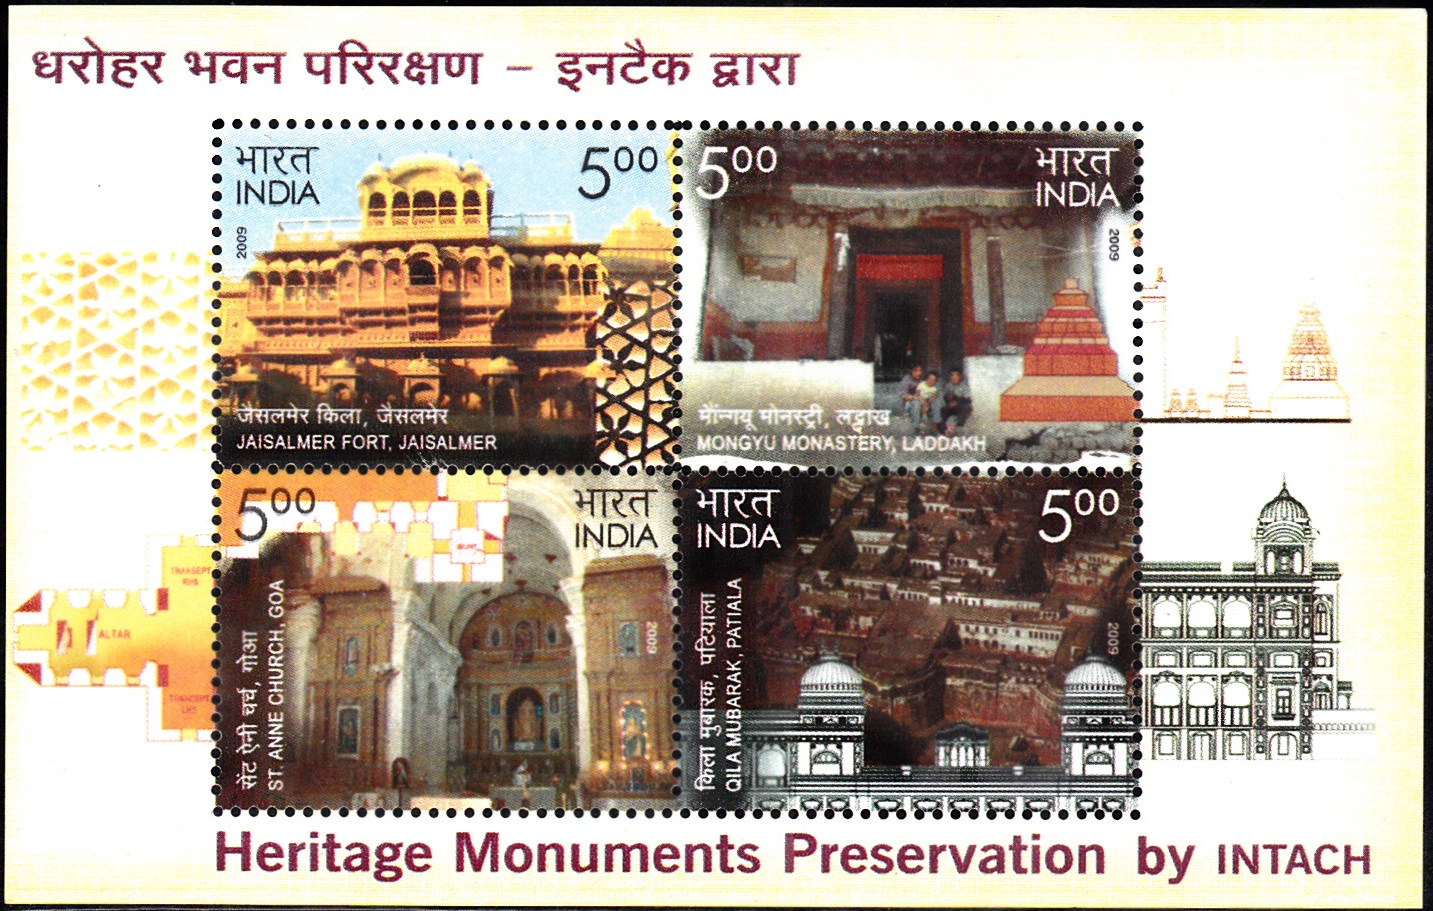 2447 Heritage Monuments Preservation by INTACH [India Miniature Sheet]